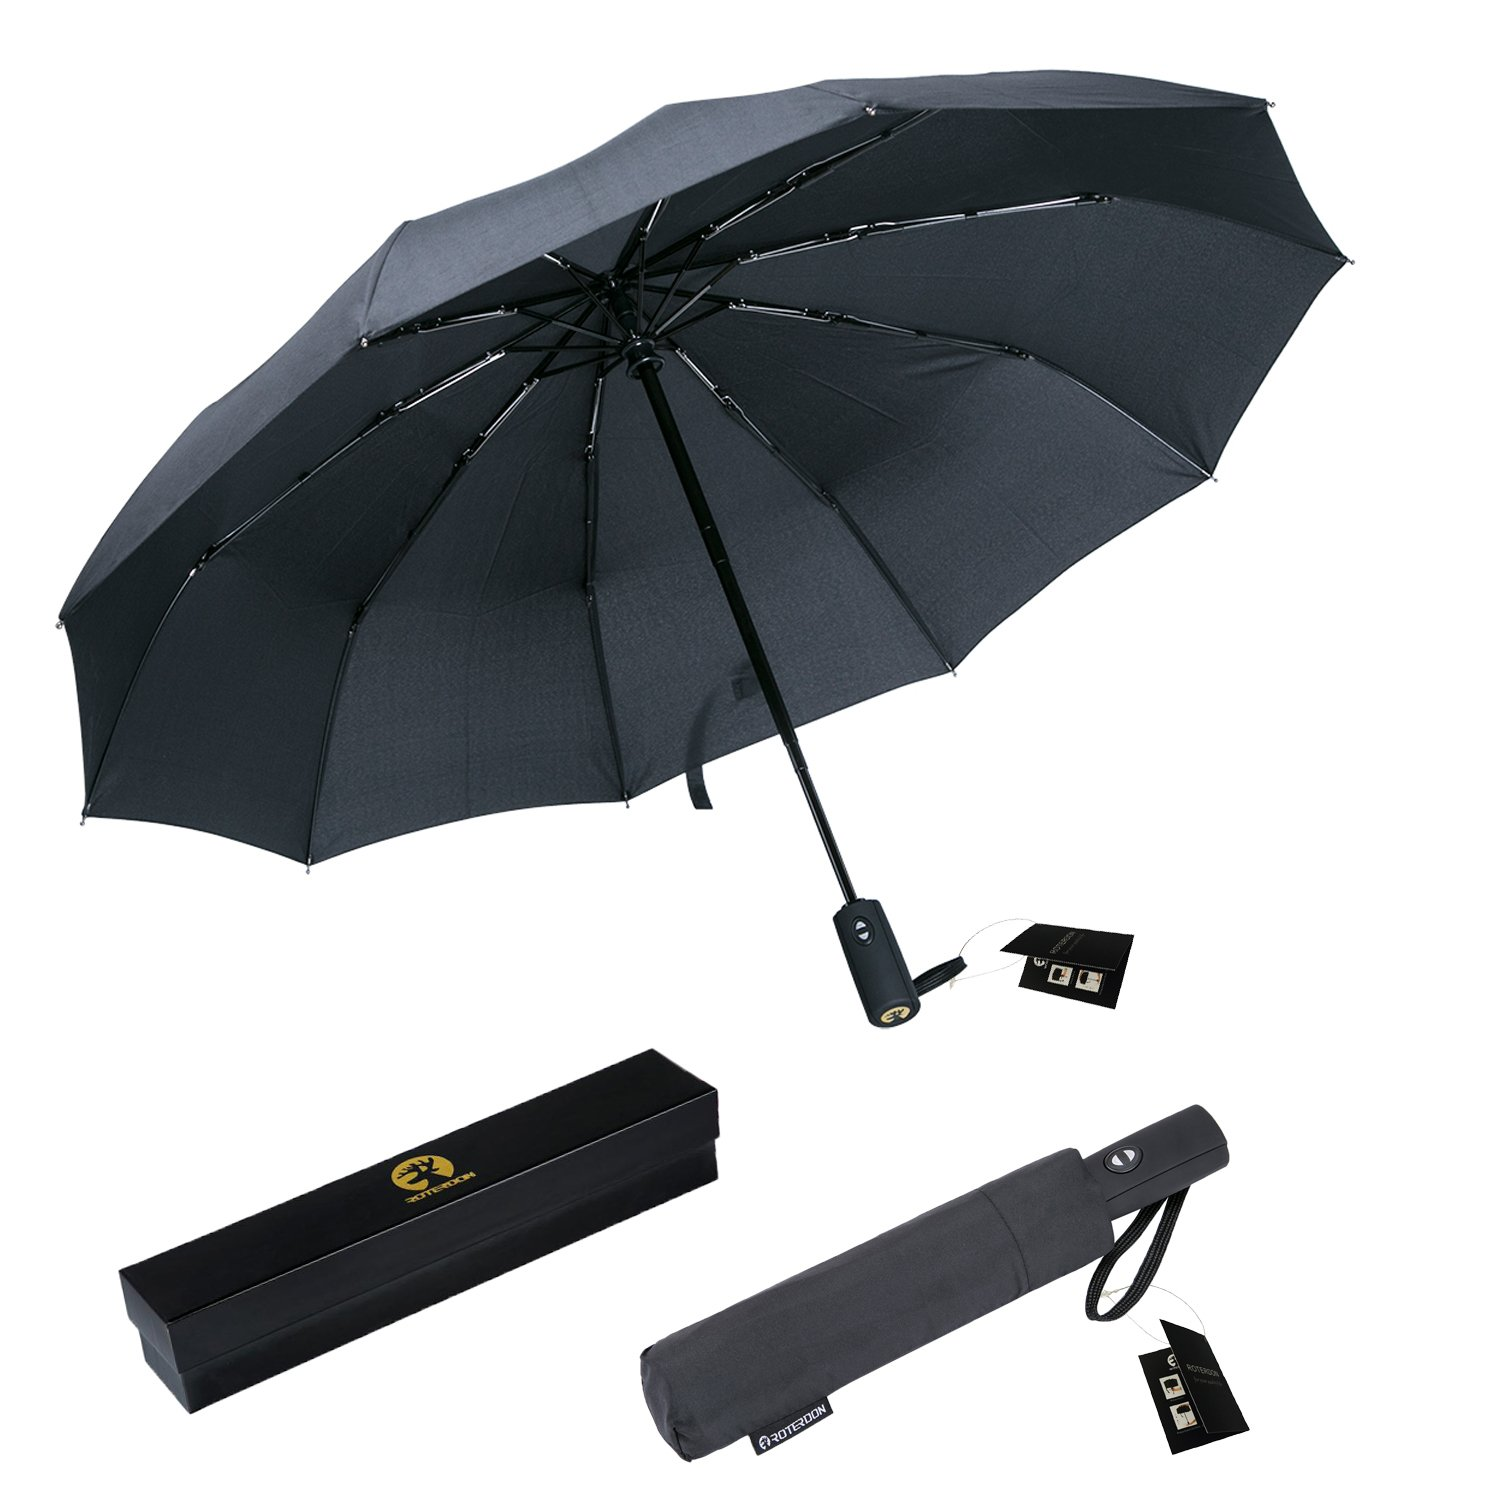 ROTERDON Windproof Travel Umbrellas Automatic Open&Close Resistant Teflon Canopy or Gift Choice (Black)